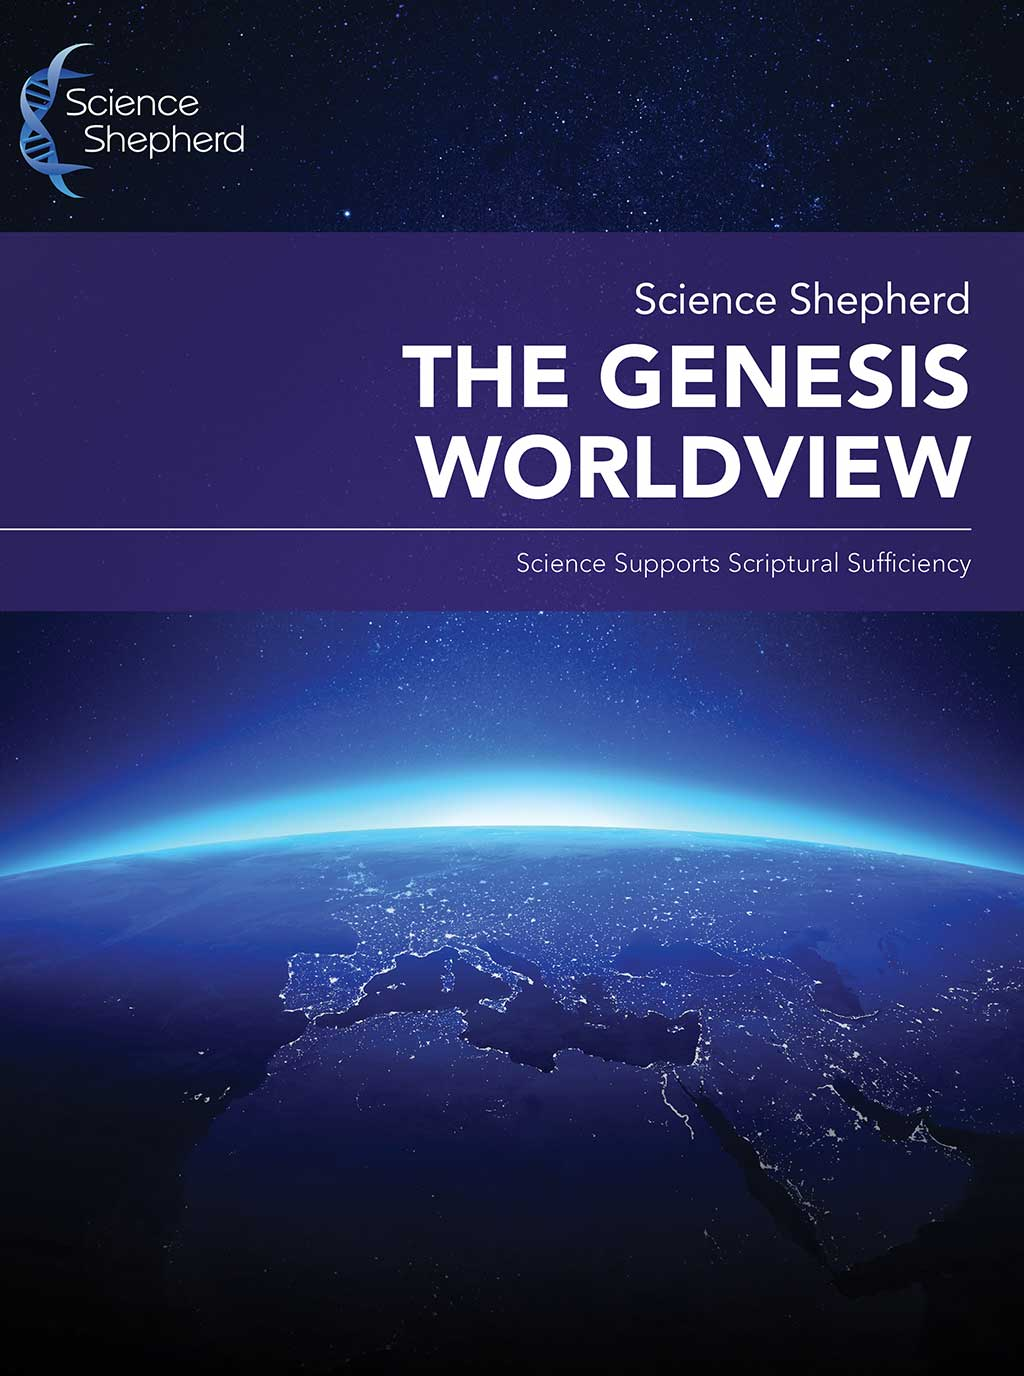 Science Shepherd's The Genesis Worldview science and creation lecture cover